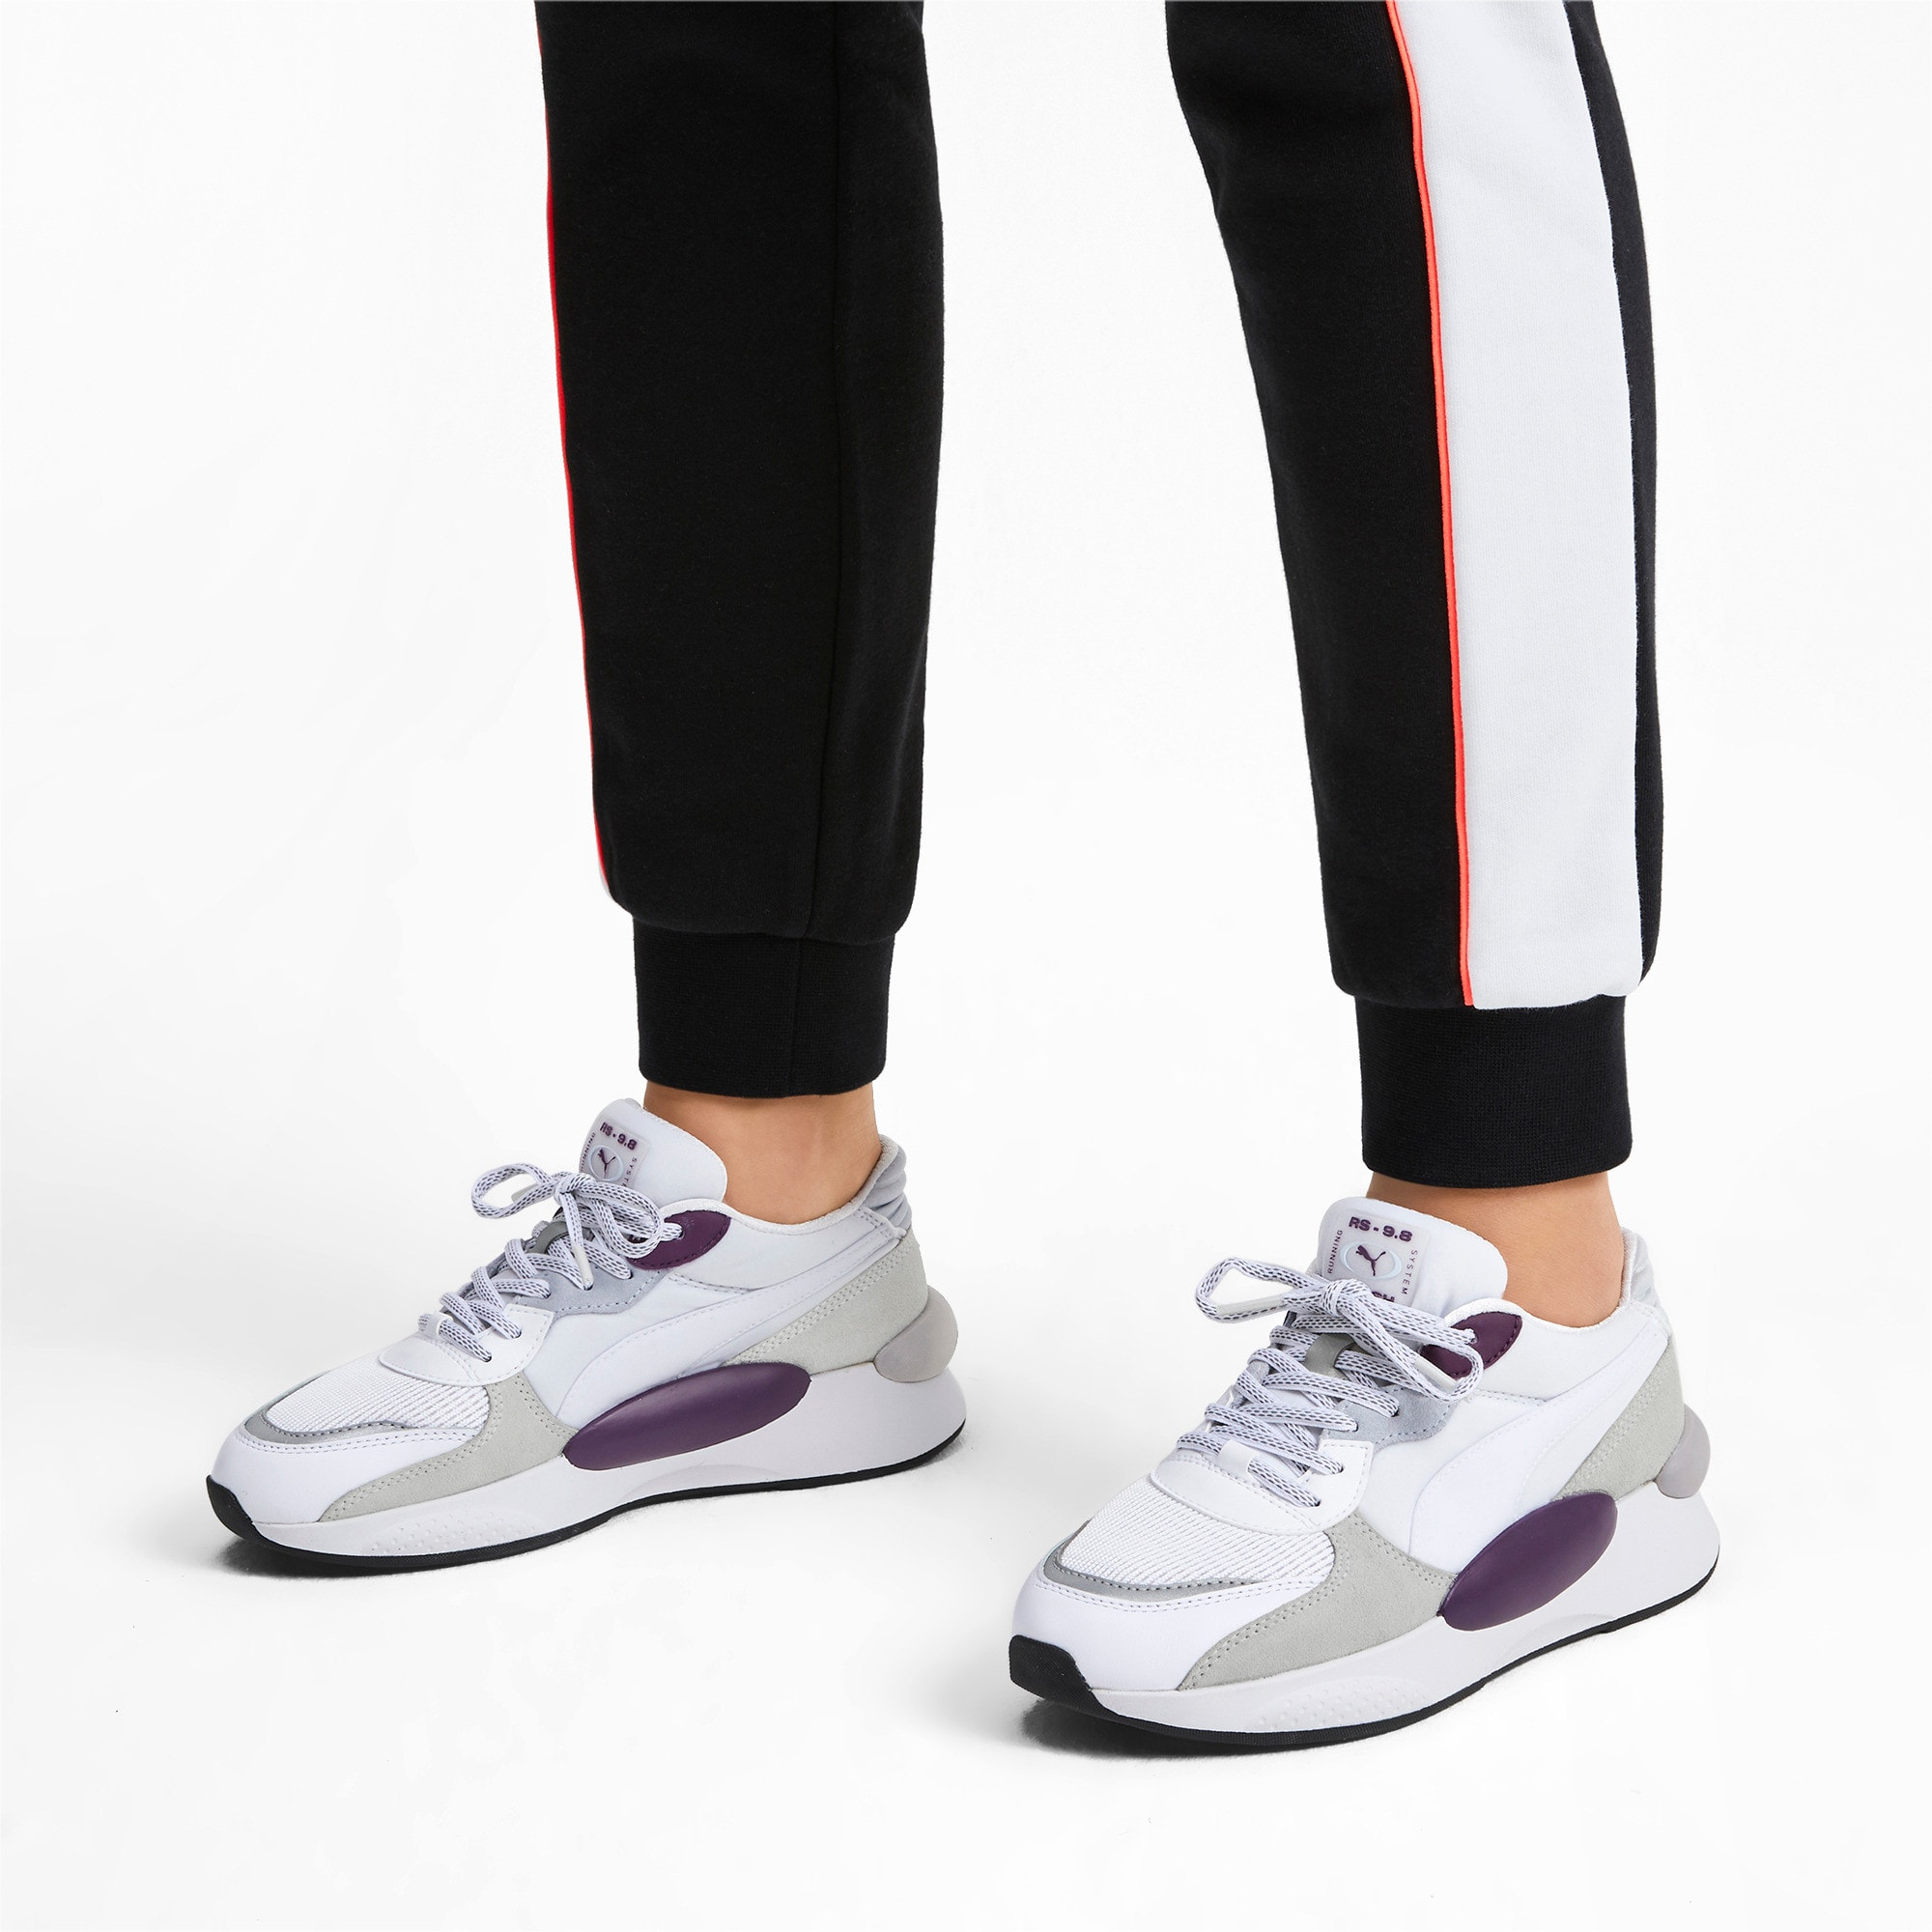 Thumbnail 2 of RS 9.8 Gravity Sneaker, Puma White-Plum Purple, medium